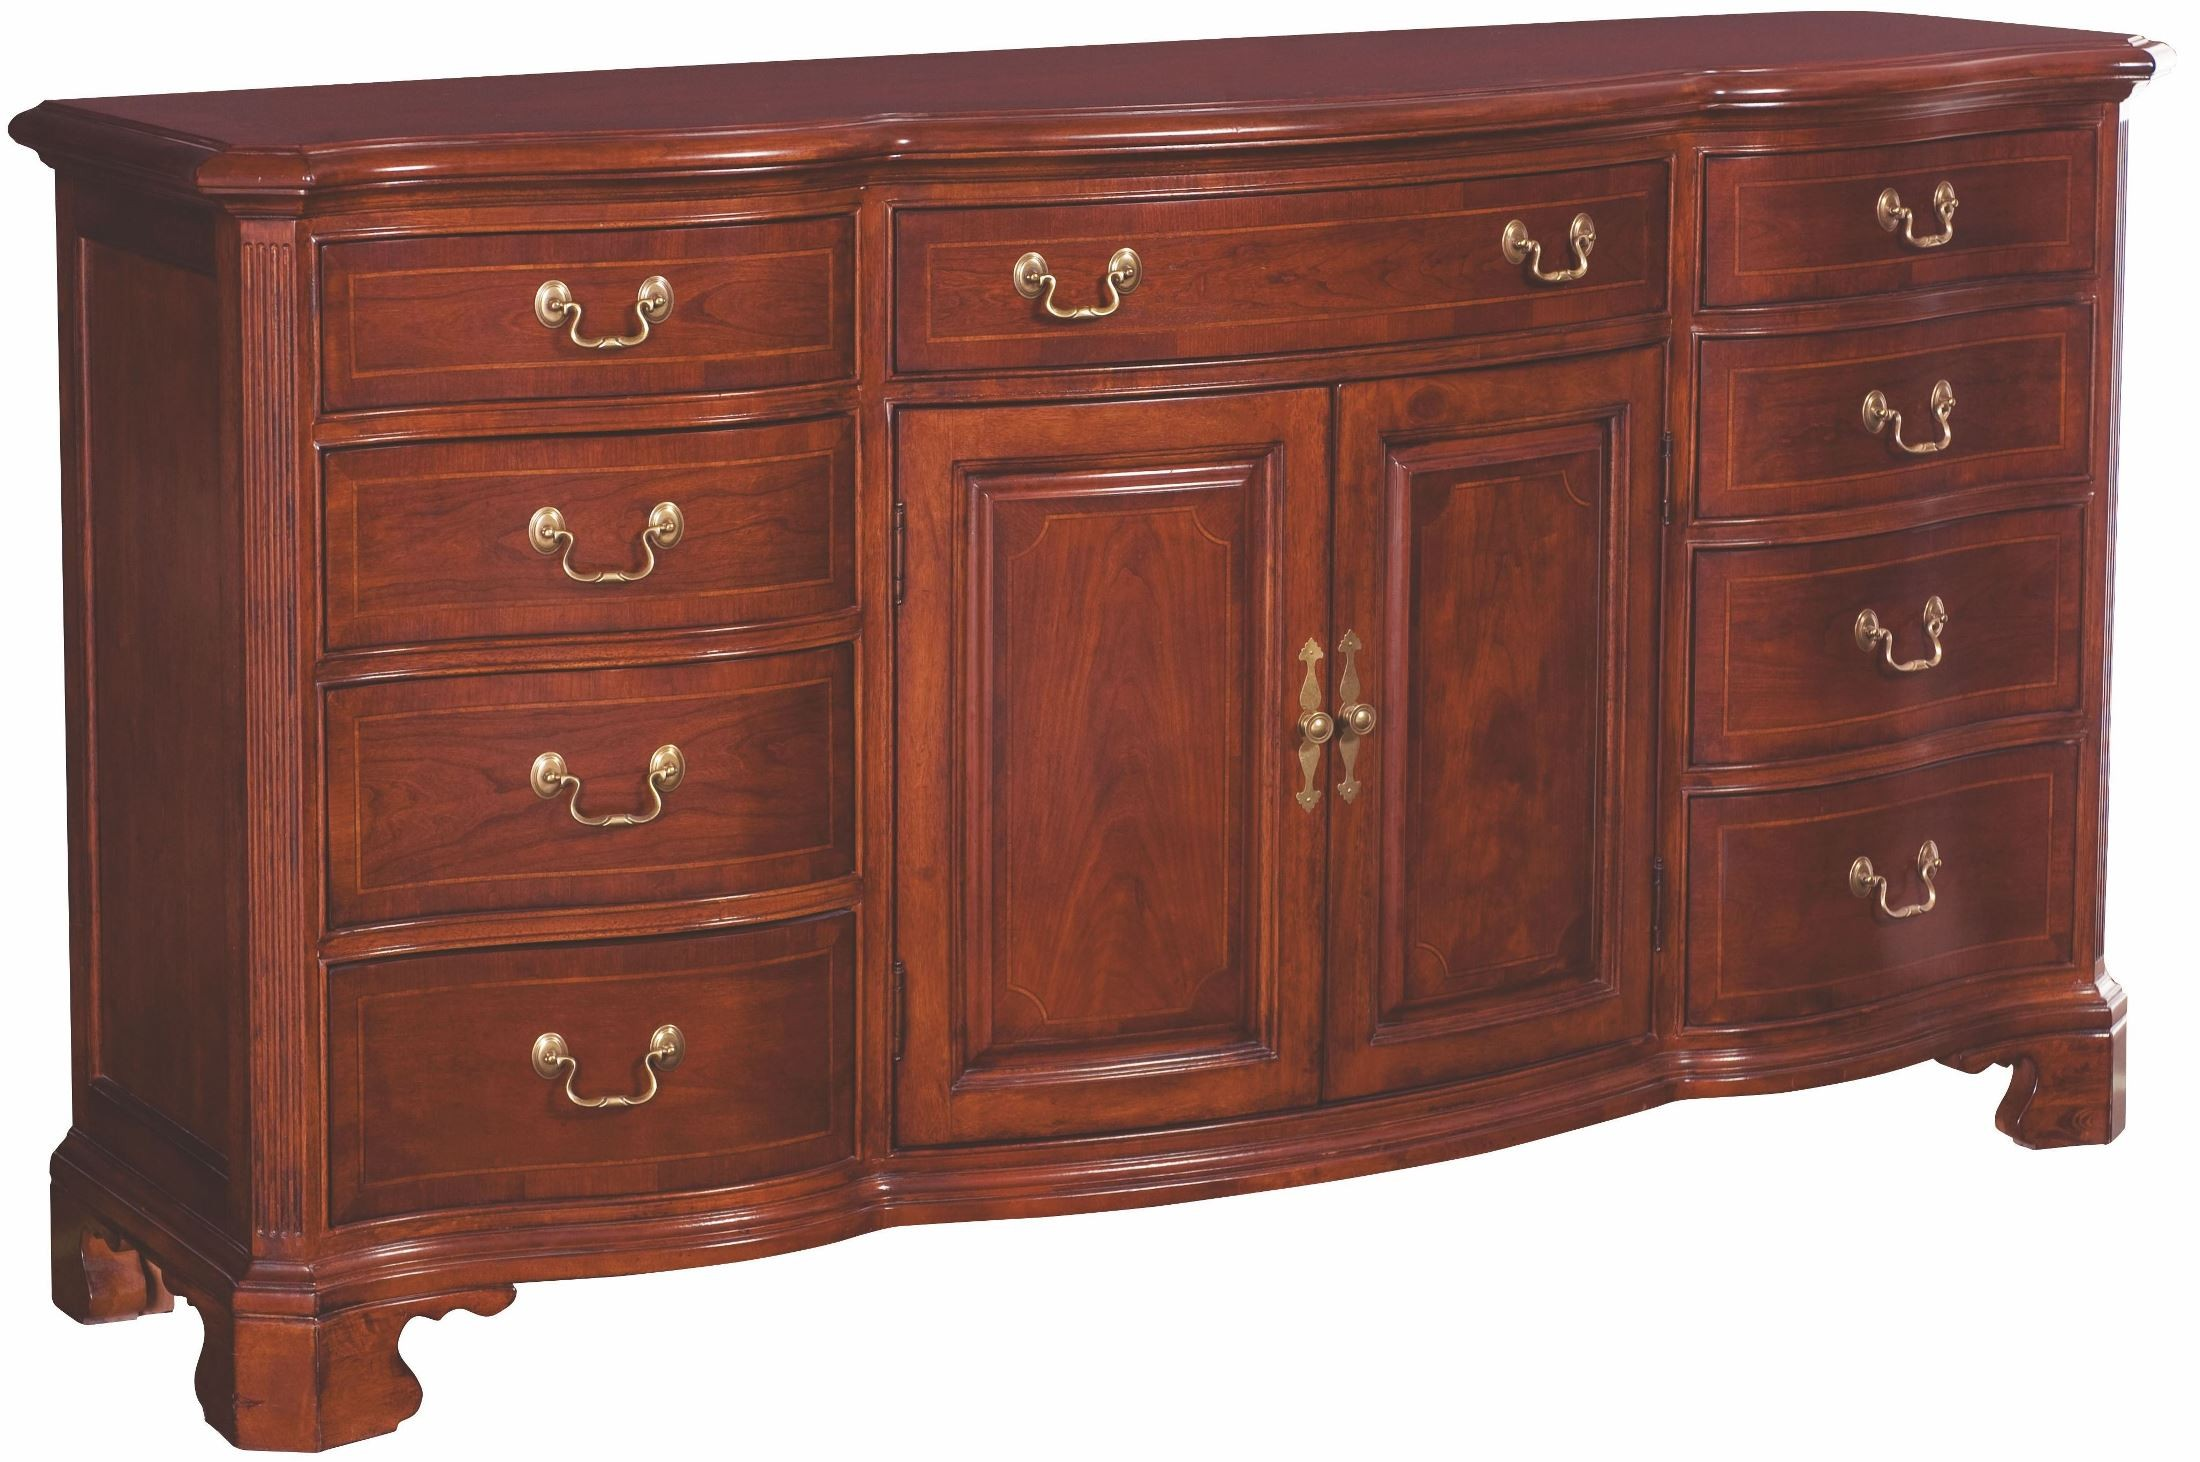 Cherry grove classic antique cherry door triple dresser for American classic antiques